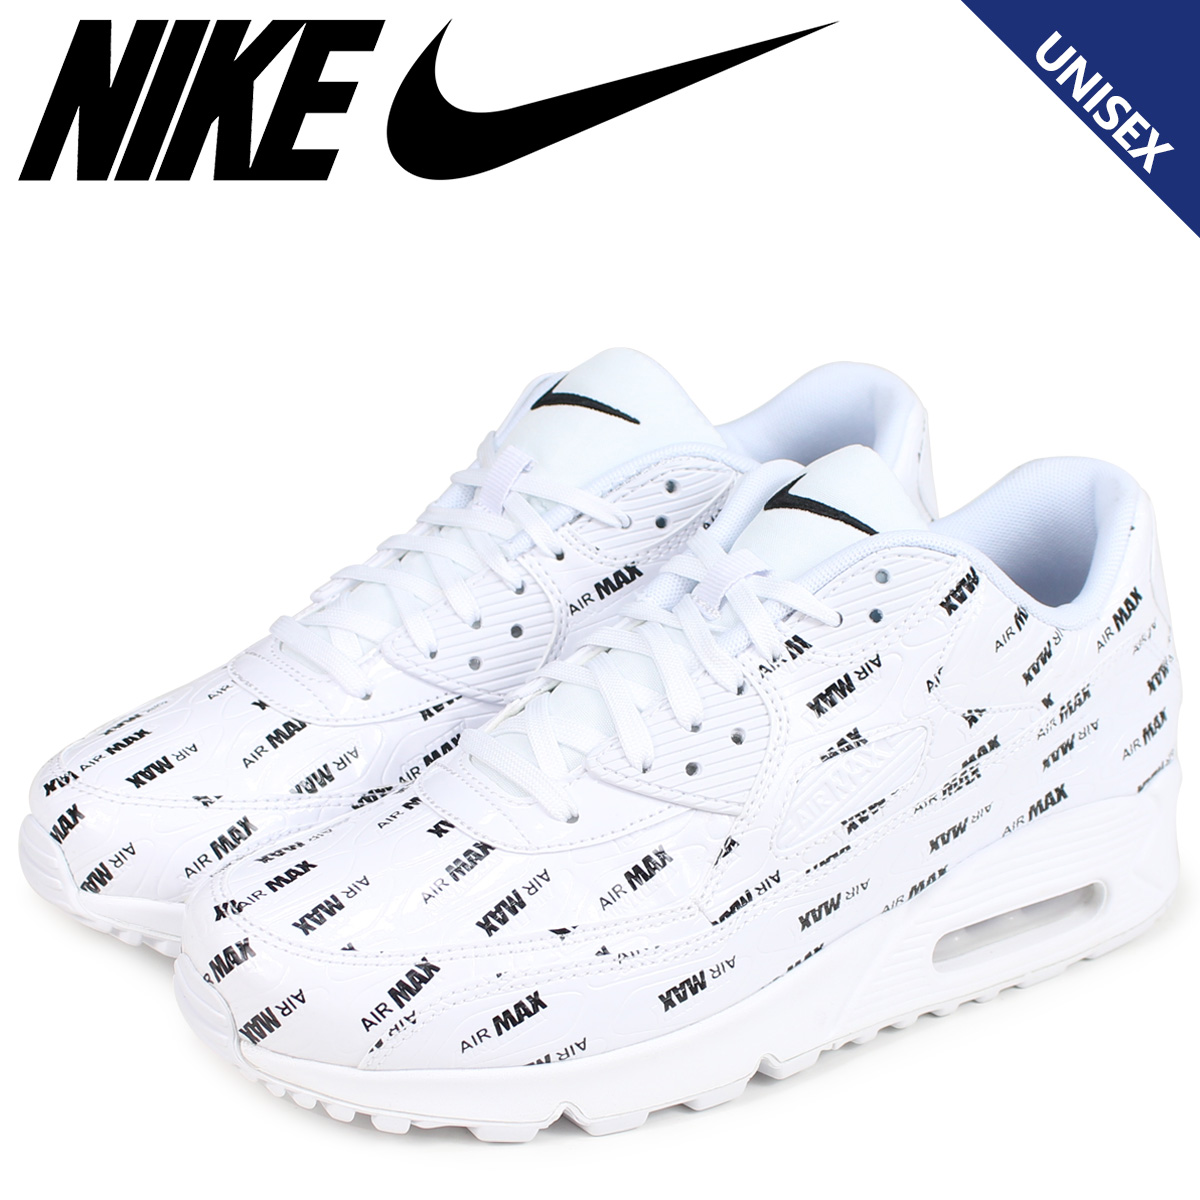 Nike Air Max 90 Premium Men's White White 700155 101